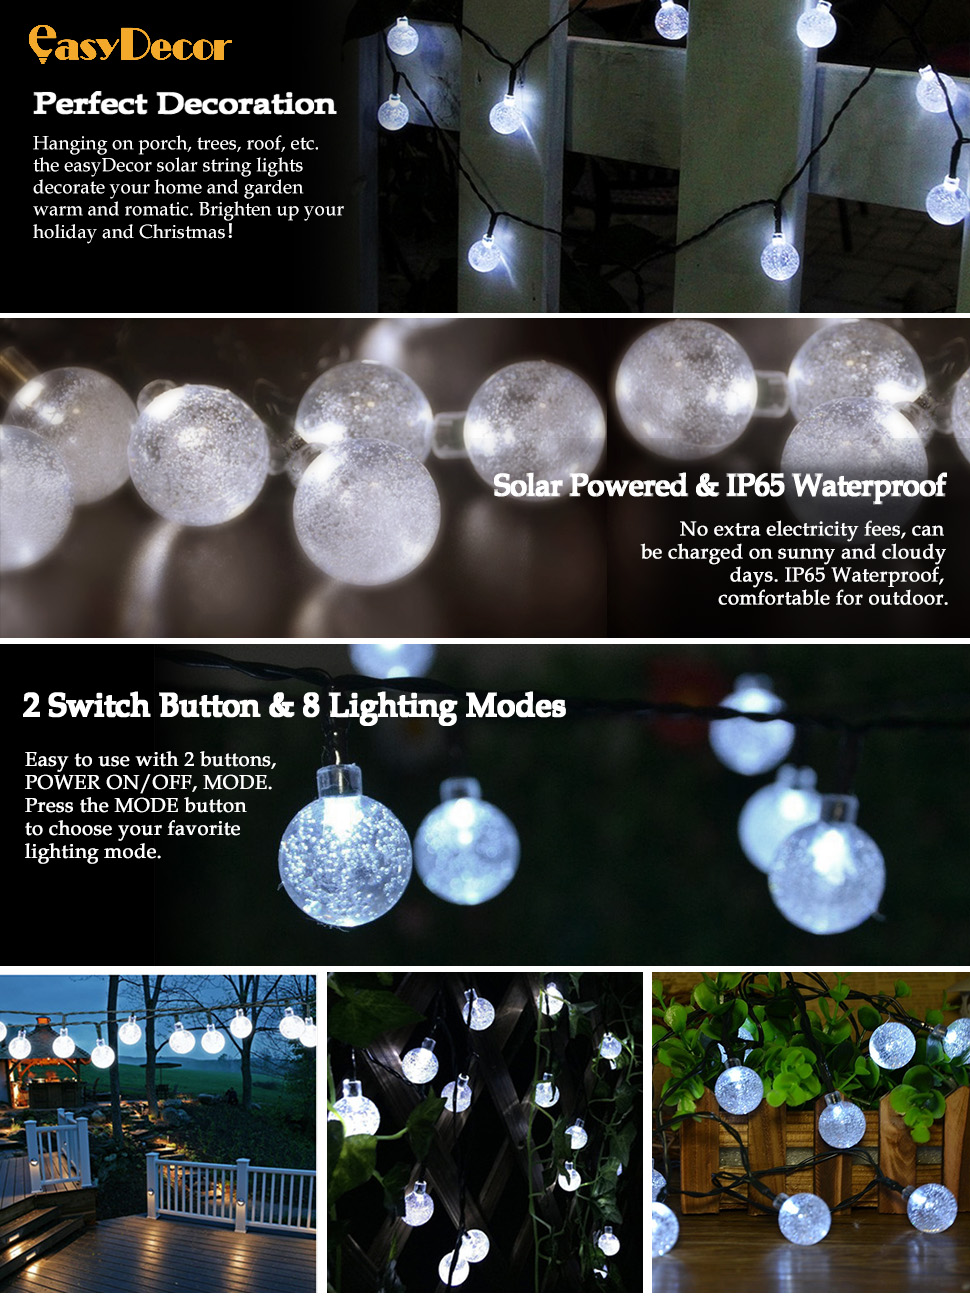 Amazon easydecor globe solar string lights 30 led 21ft 8 mode ip65 waterproof perfect for outdoor and indoor use 2lar powered led light strings no utility energy costs 3tomatically working the string lights aloadofball Gallery